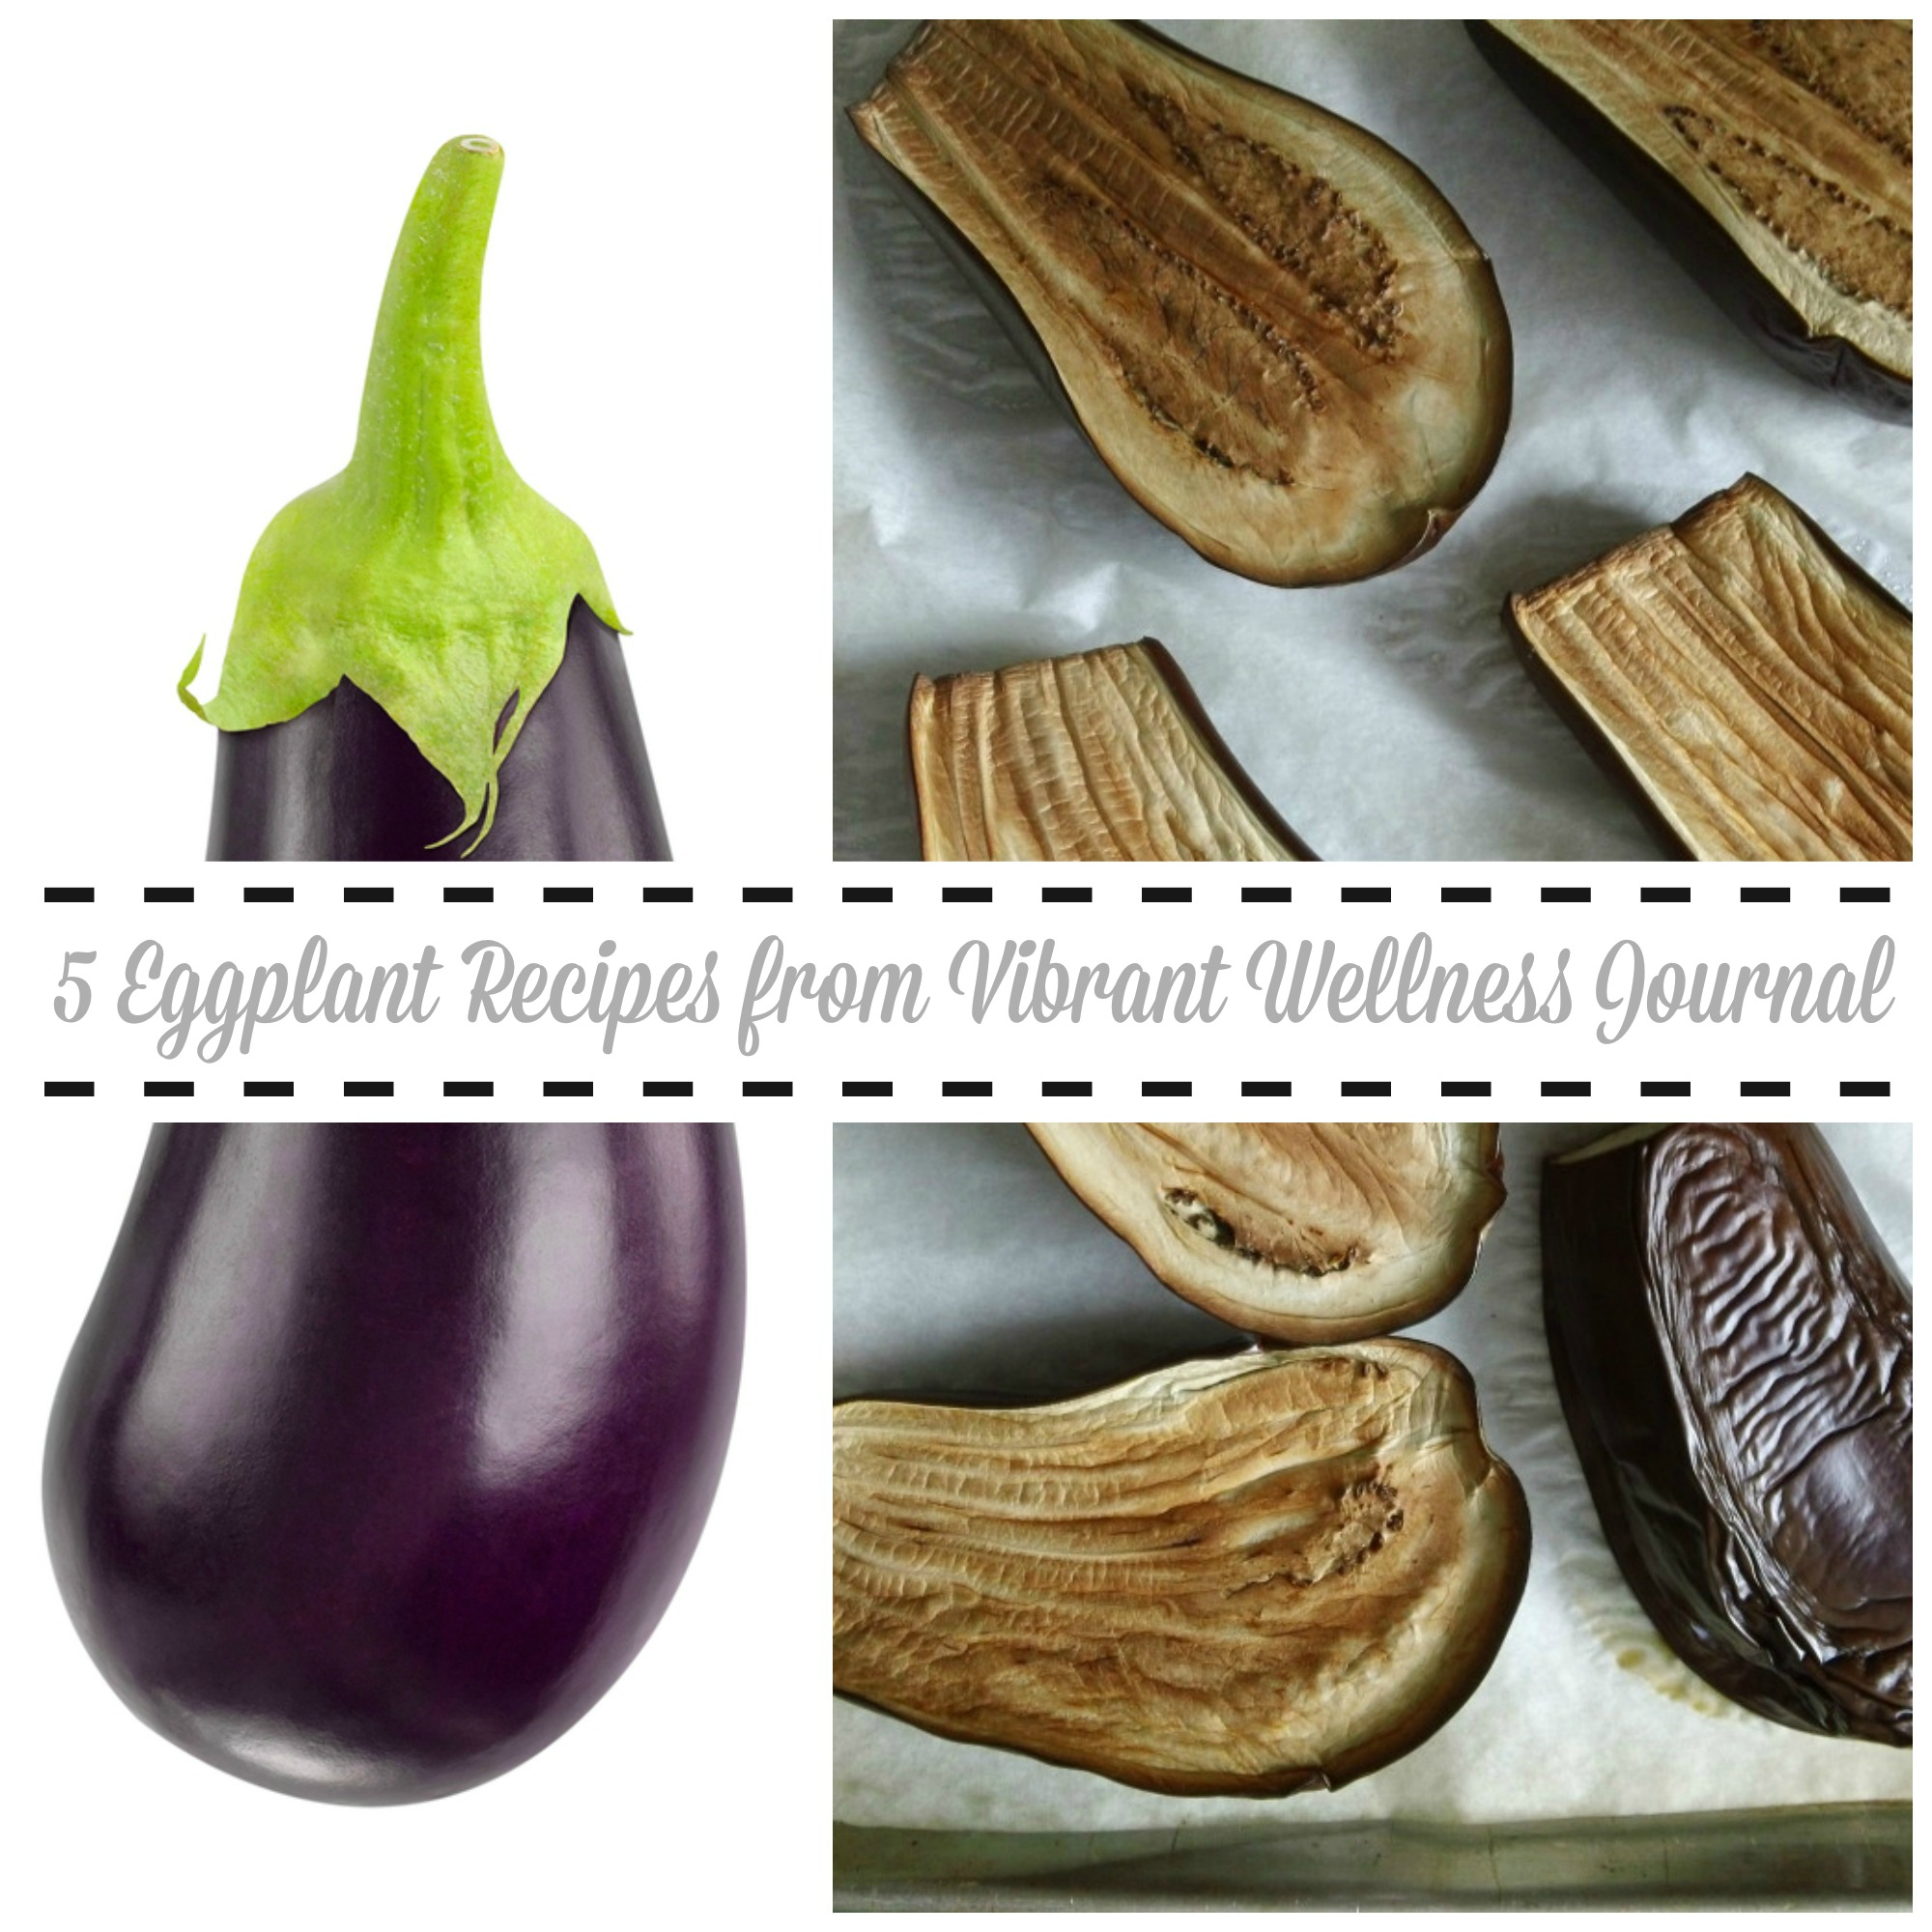 5 Eggplant Recipes: Tips to Make the Most of Nature's Wackiest Vegetable